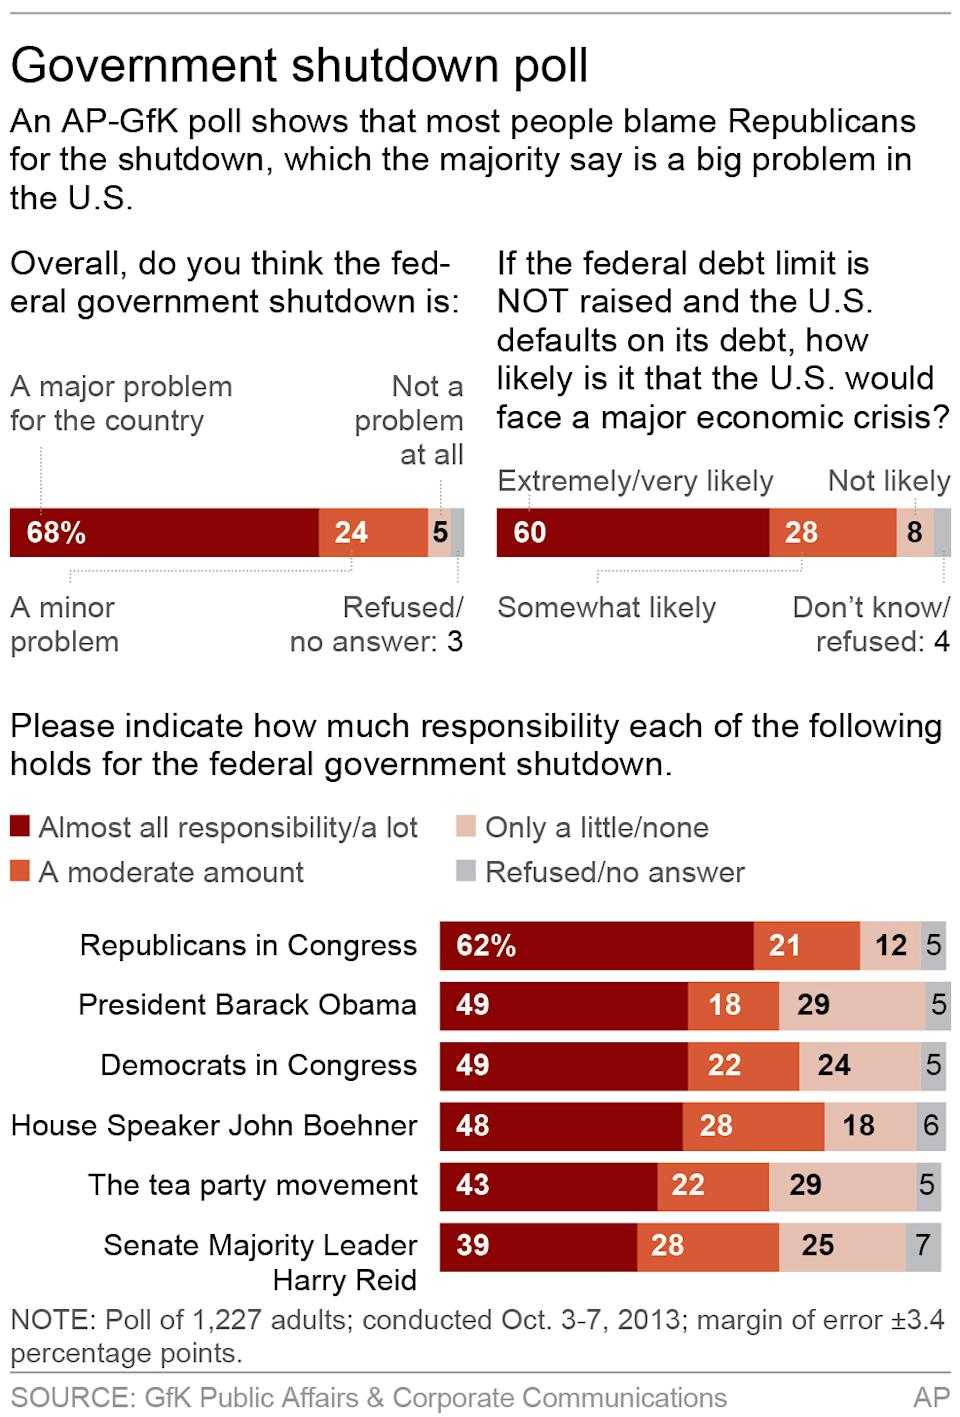 Graphic shows AP-GfK opinion poll on government shutdown; 2c x 5 inches; 96.3 mm x 127 mm;